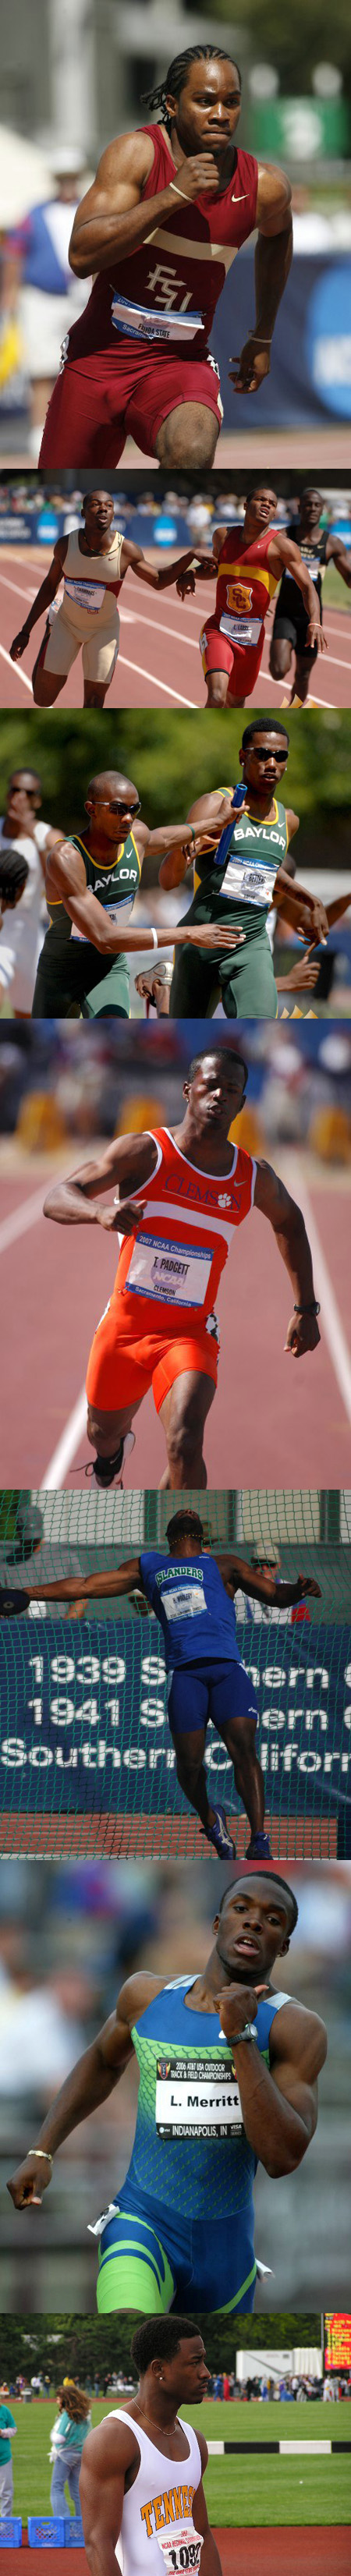 College Trackmeat #2: Battle of the Bulges